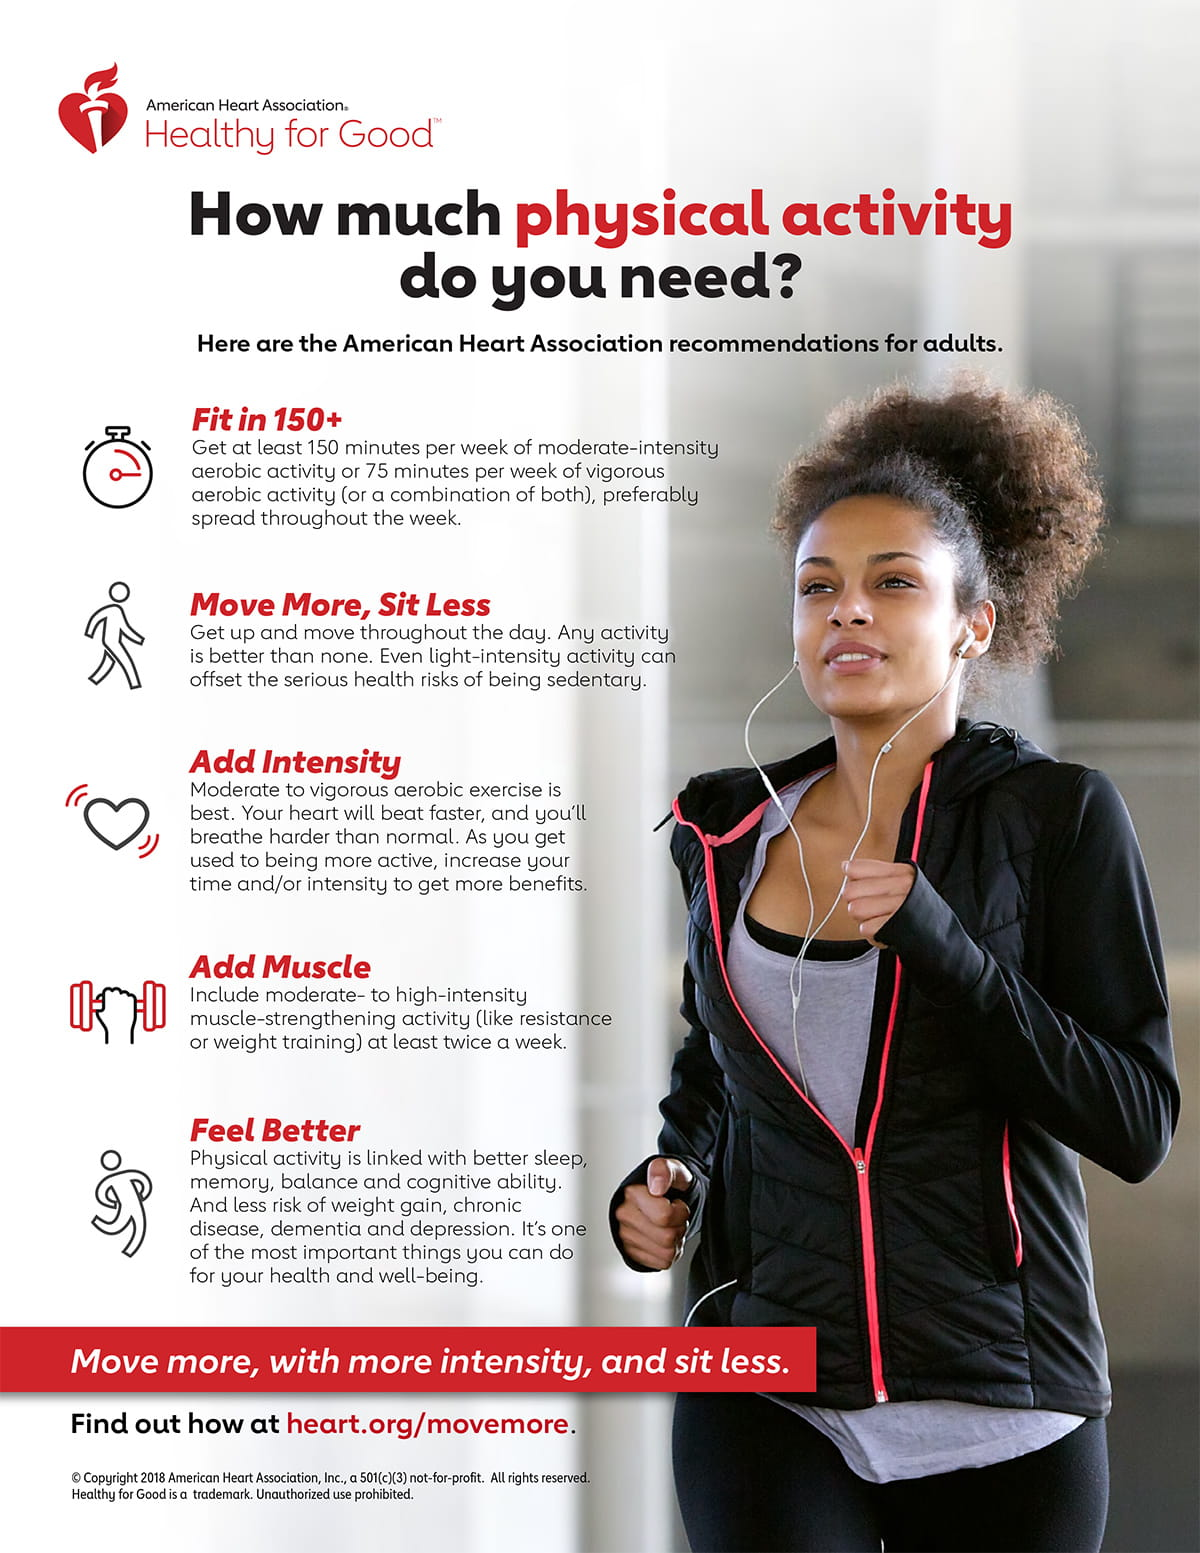 AHA Physical Activity Recommendations for Adults